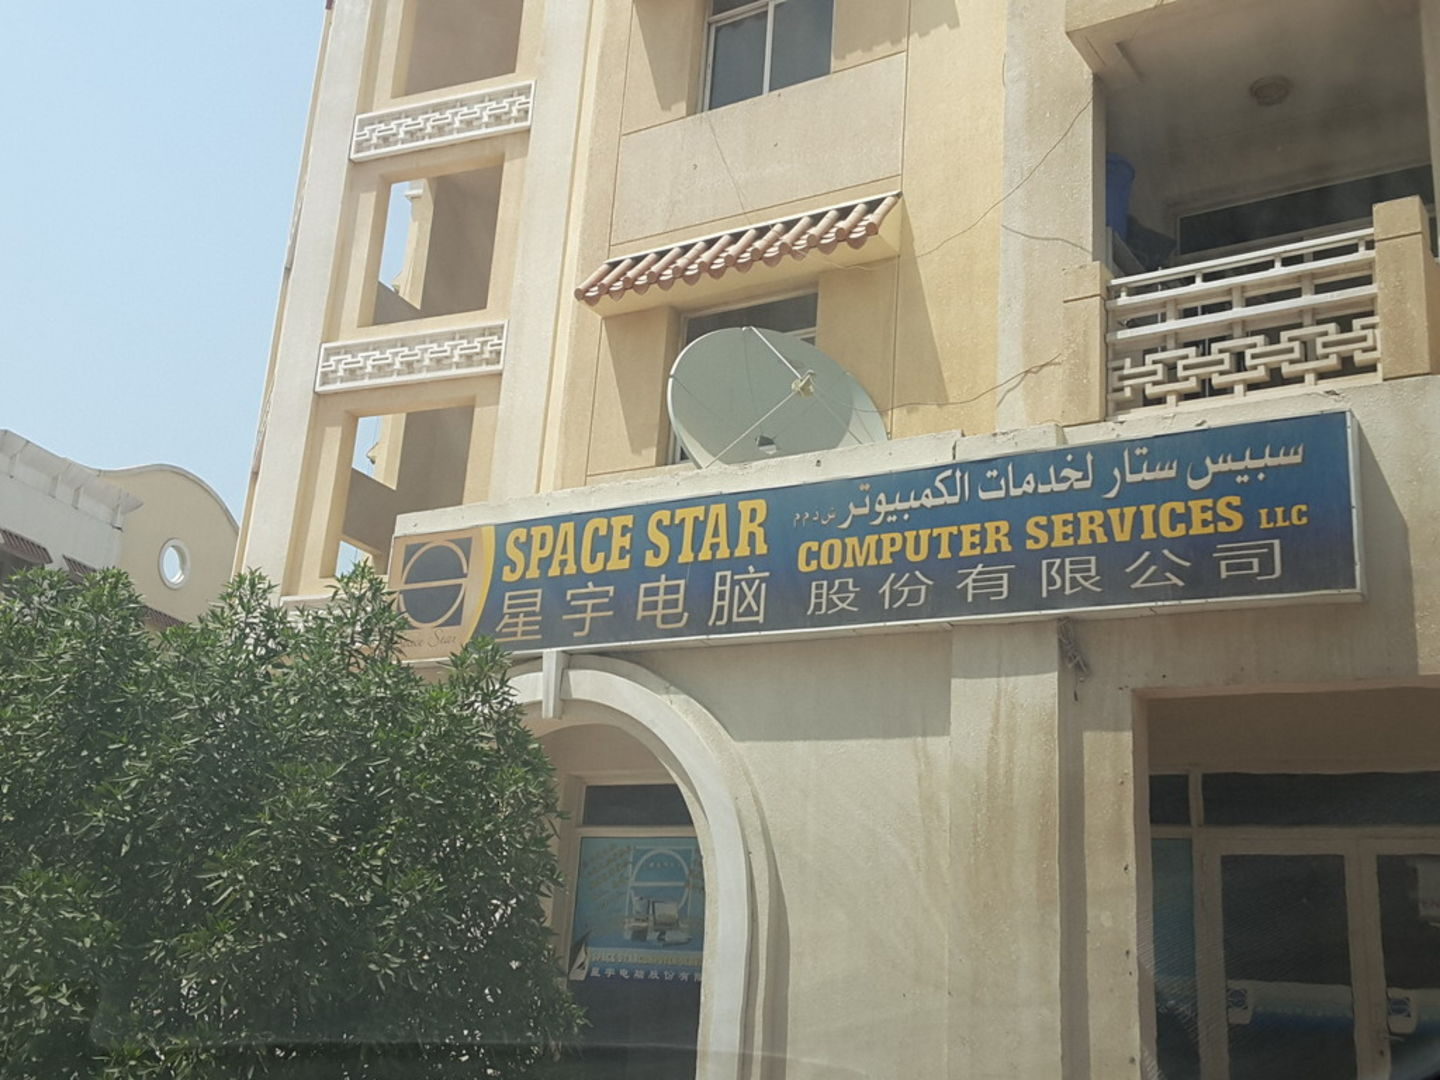 HiDubai-business-space-star-computer-services-media-marketing-it-it-telecommunication-international-city-warsan-1-dubai-2